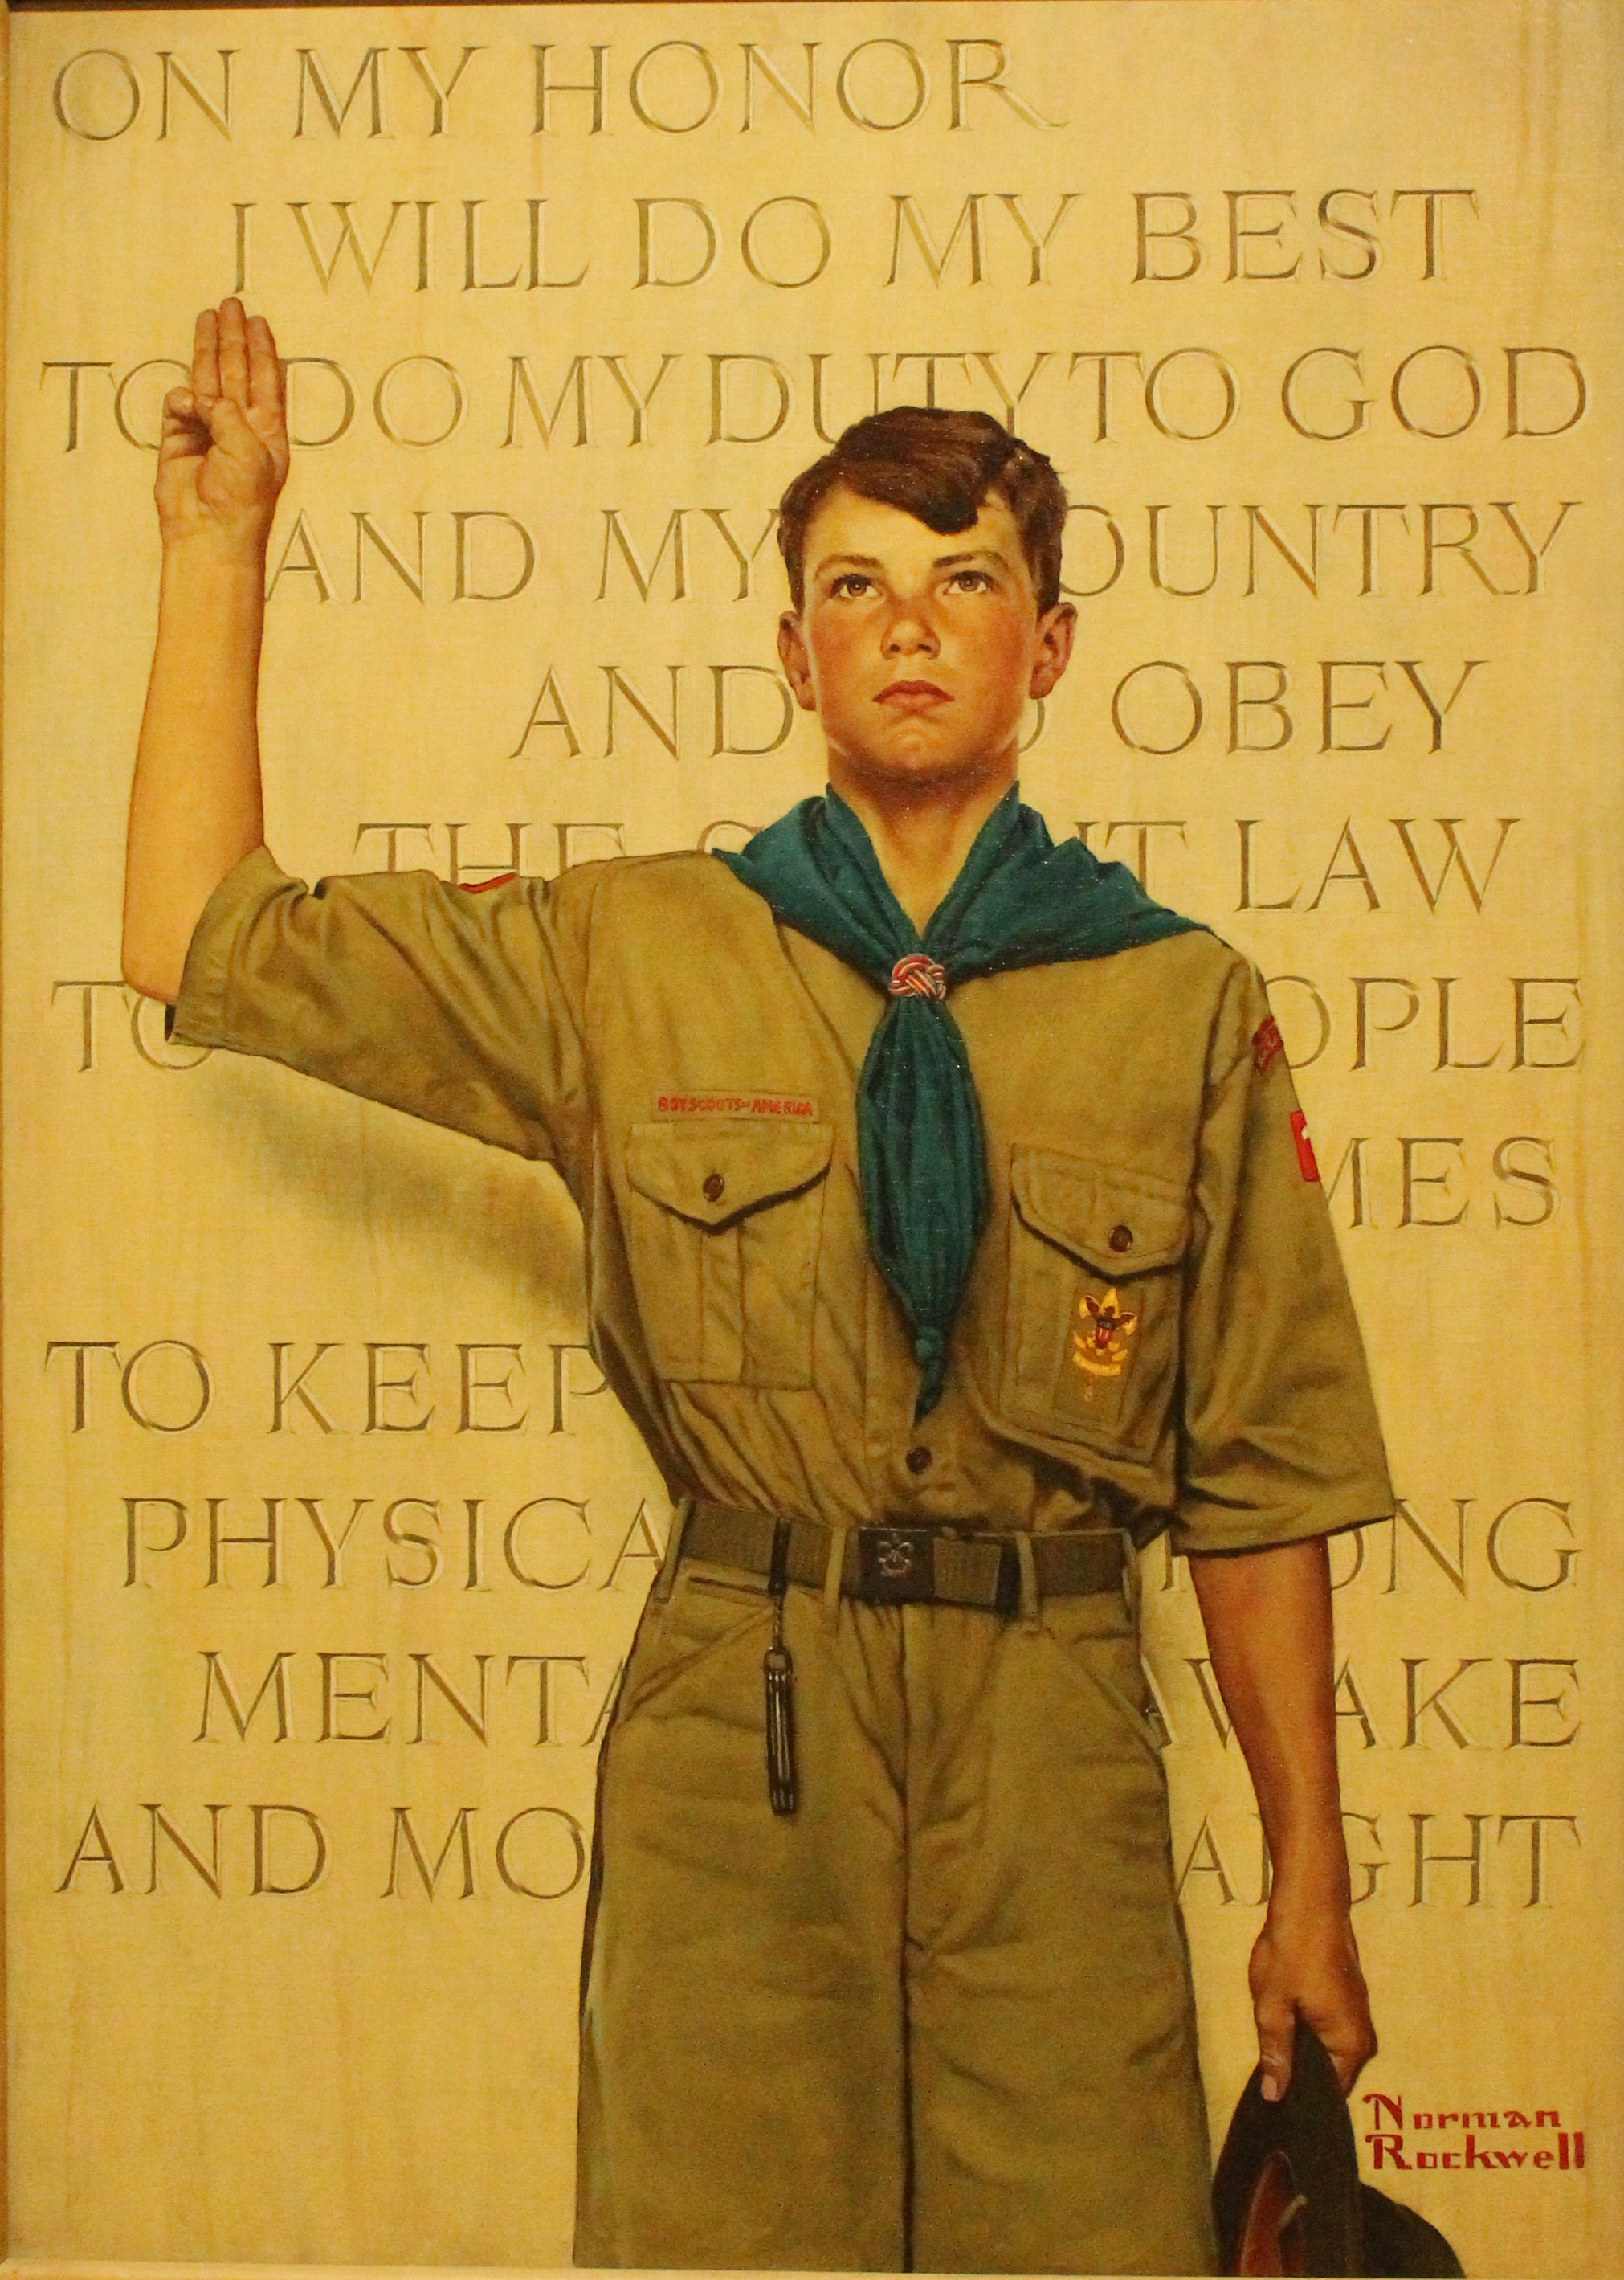 Local LGBT groups, ousted lesbian den leader respond to Boy Scouts statement